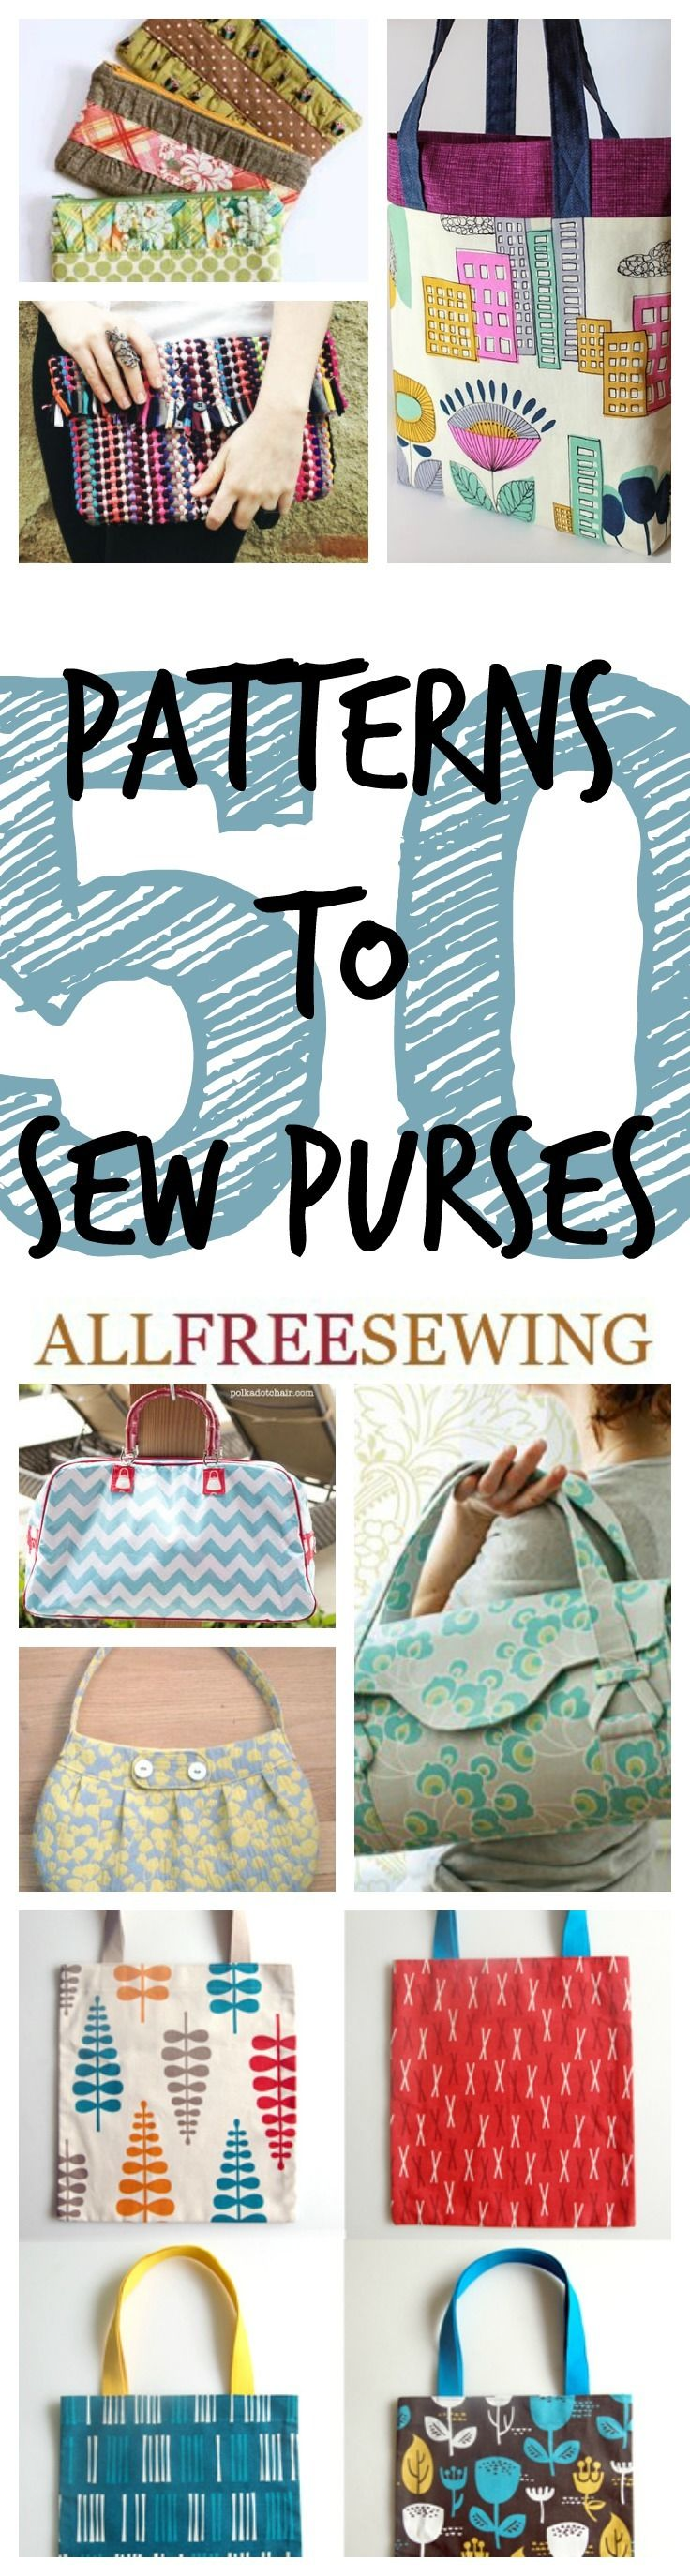 50+  Patterns to Sew Purses